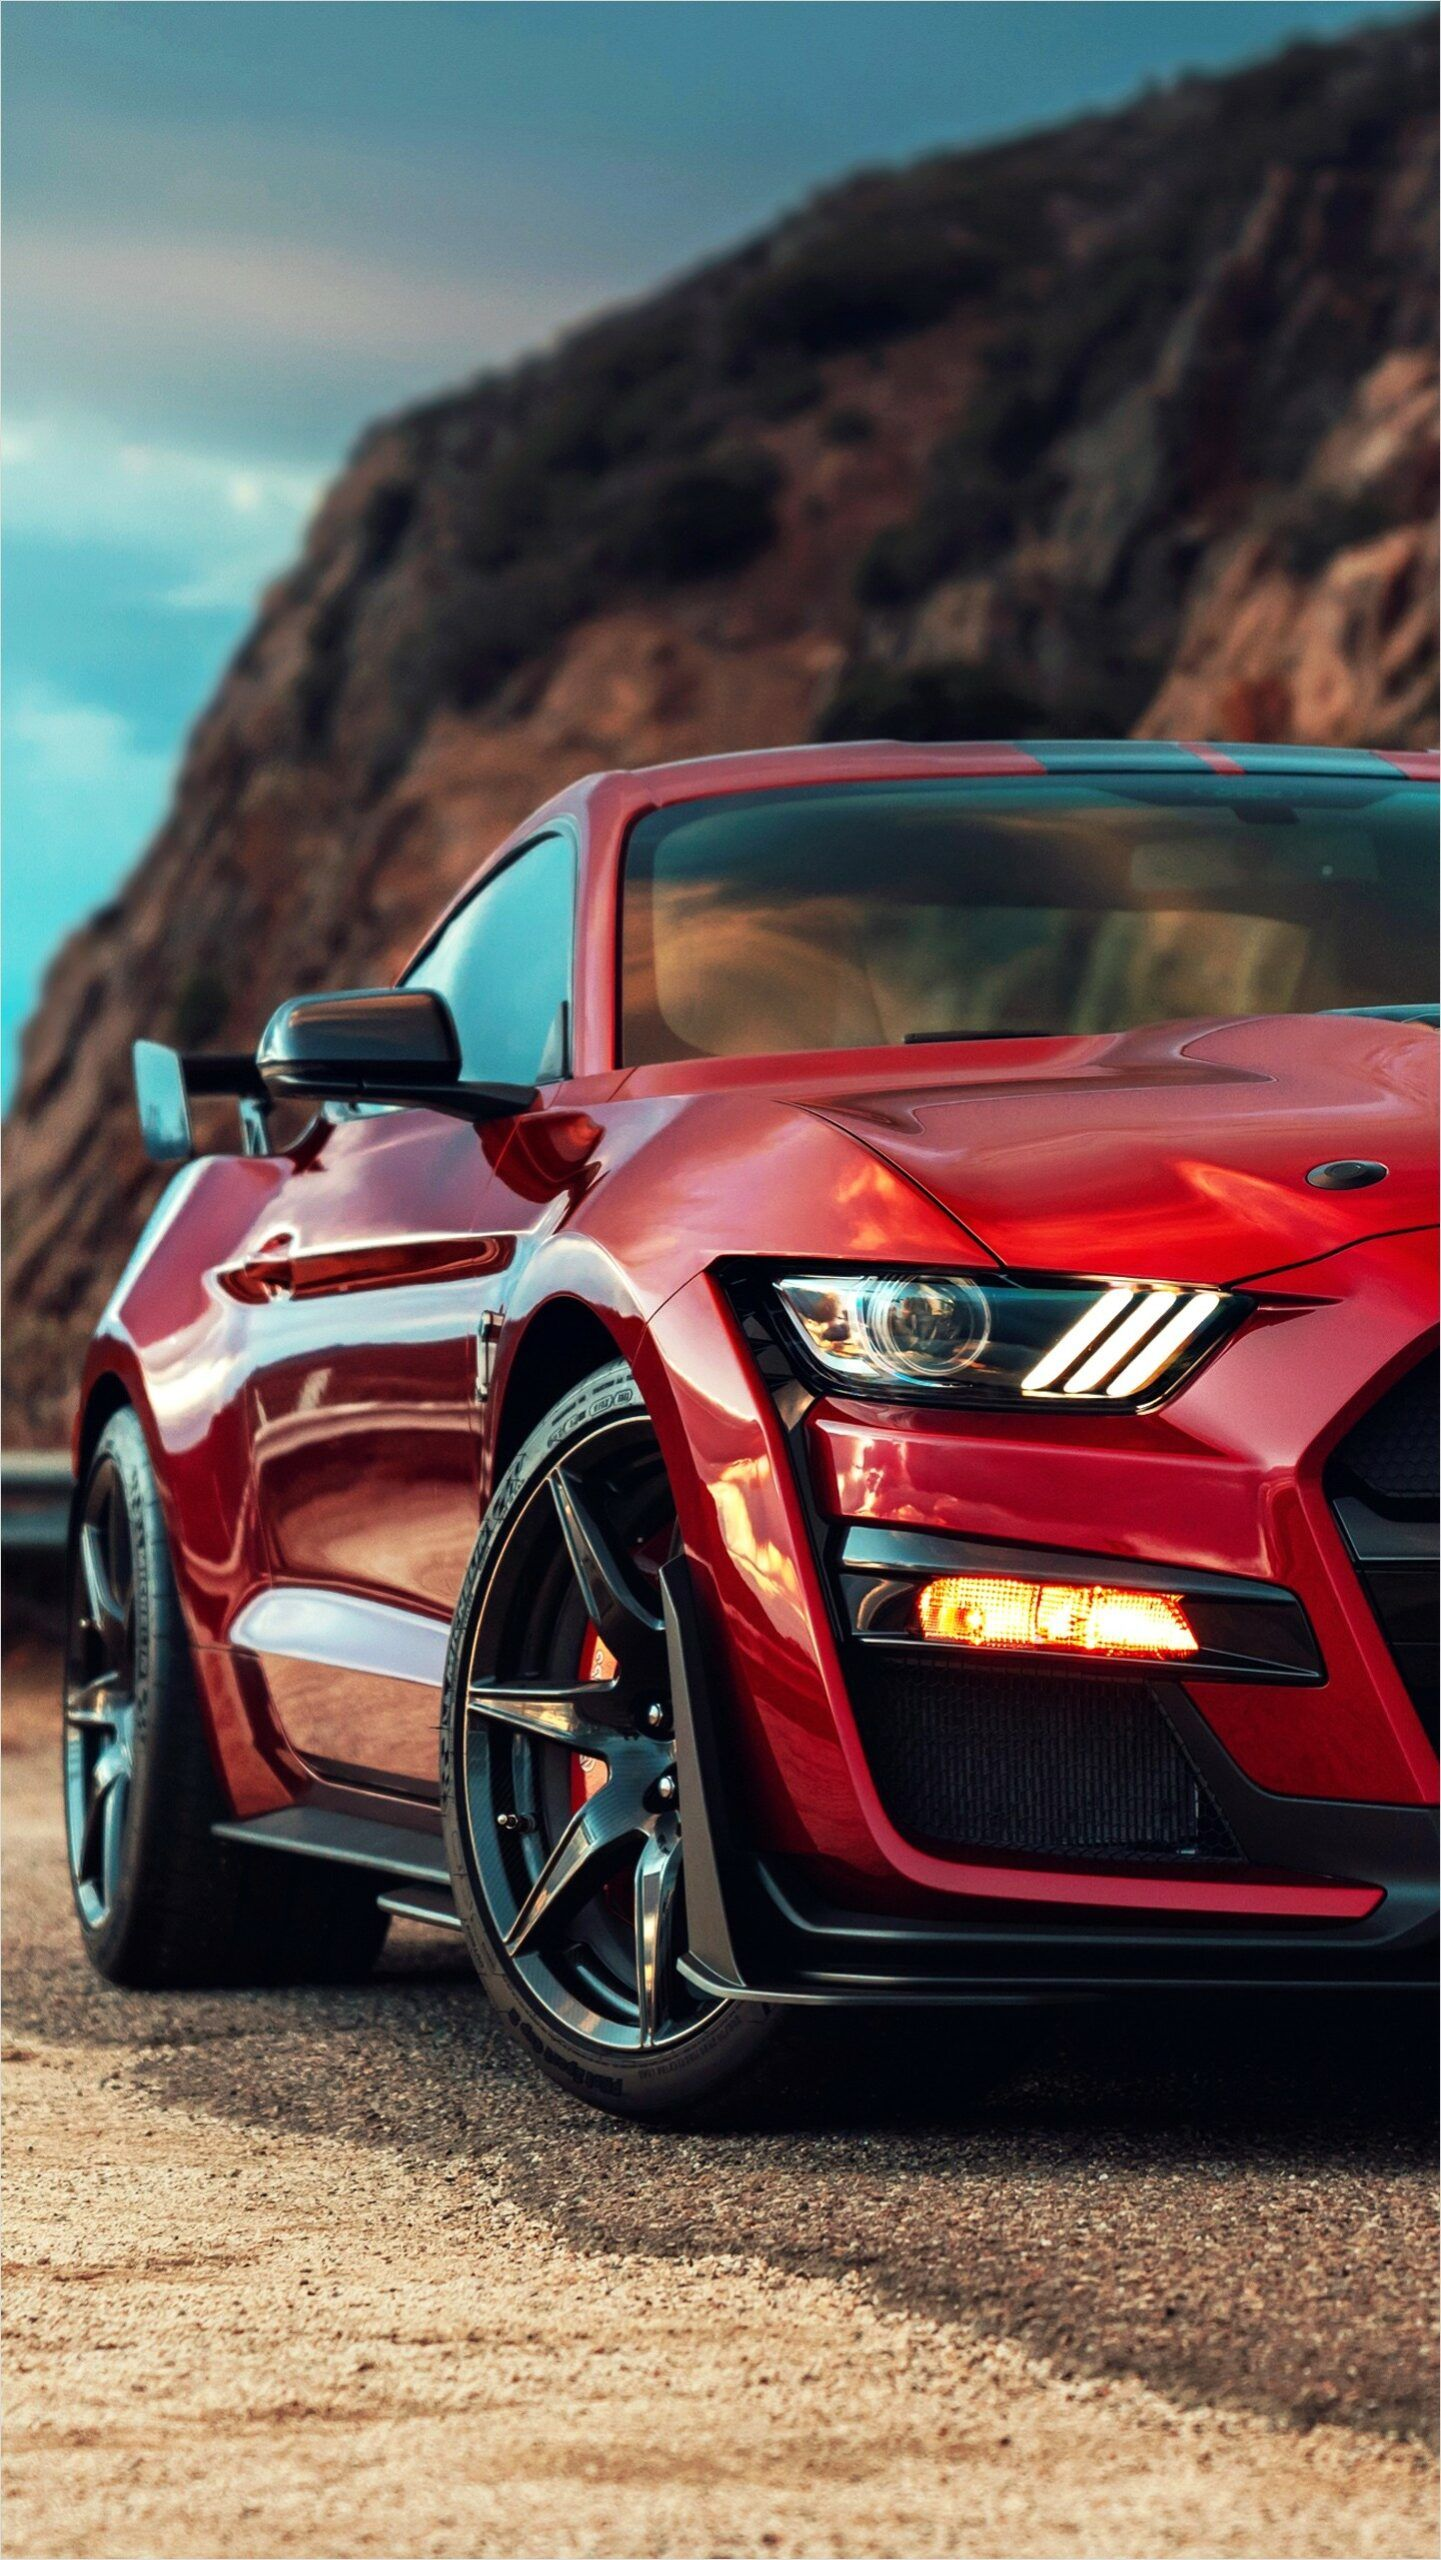 2020 Mustang Gt500 Wallpaper 4k In 2020 Mustang Cars Ford